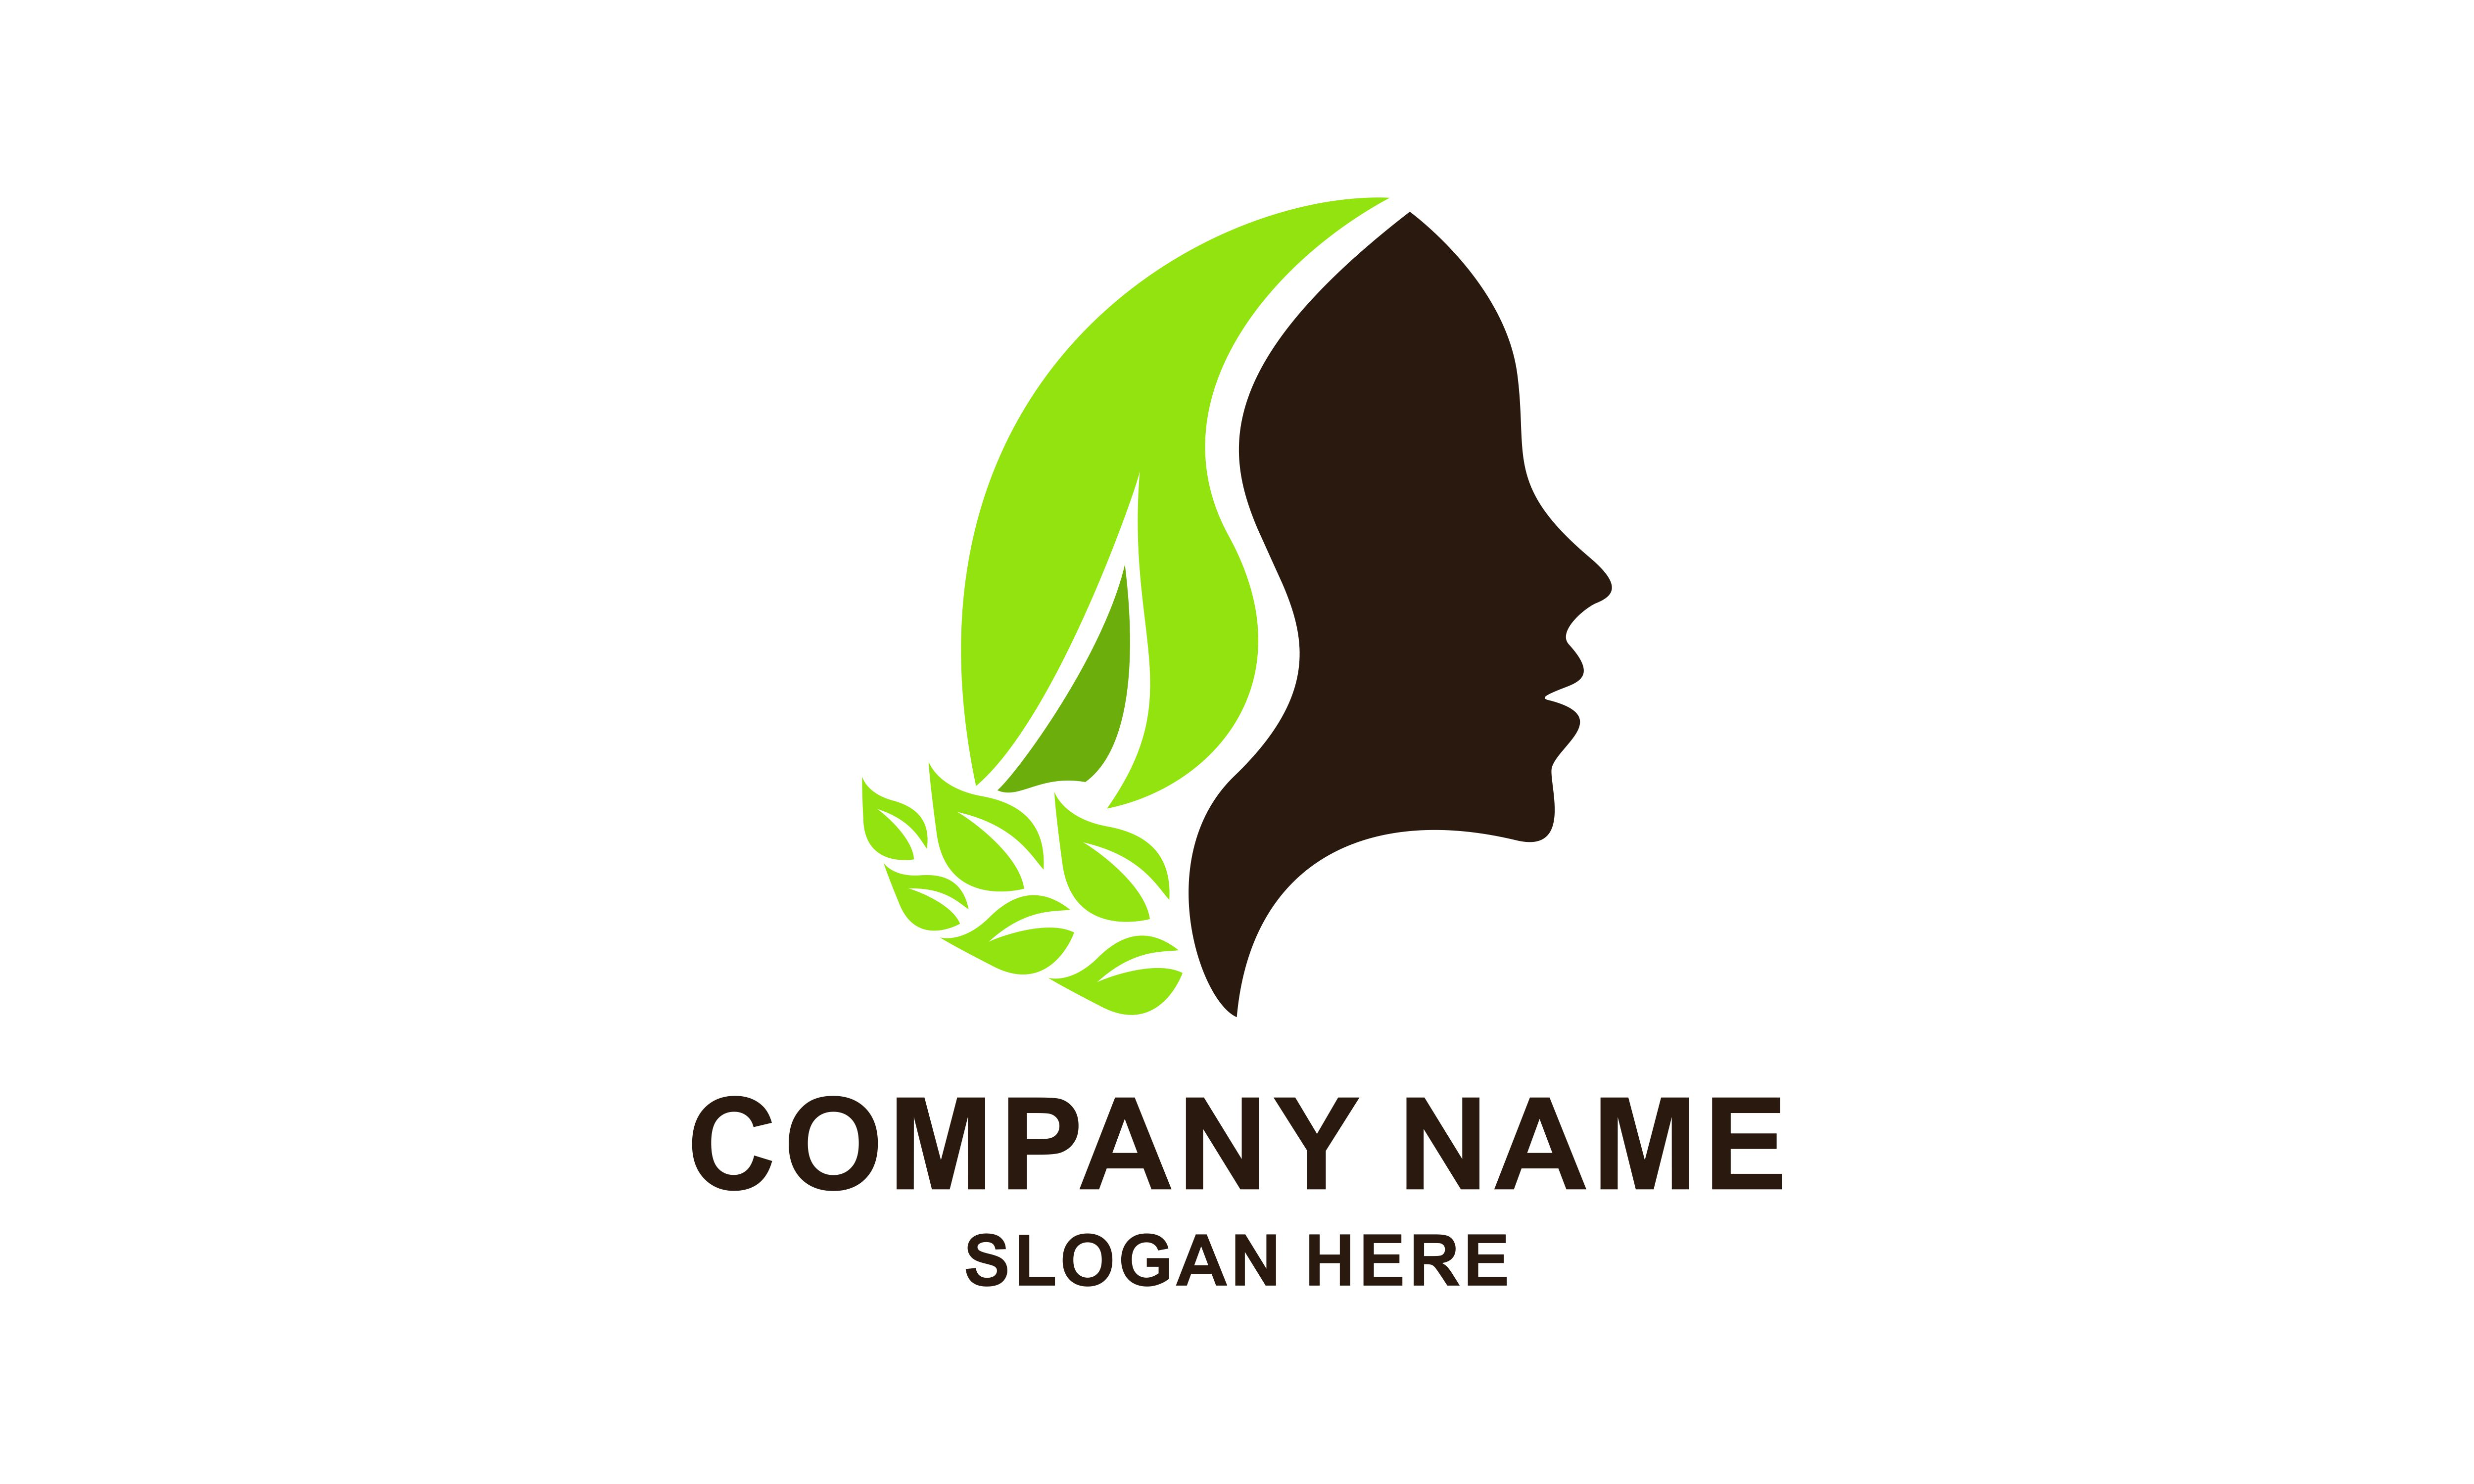 Download Free Face Leaf Woman Ecology Green Leaf Logo Graphic By 2qnah for Cricut Explore, Silhouette and other cutting machines.